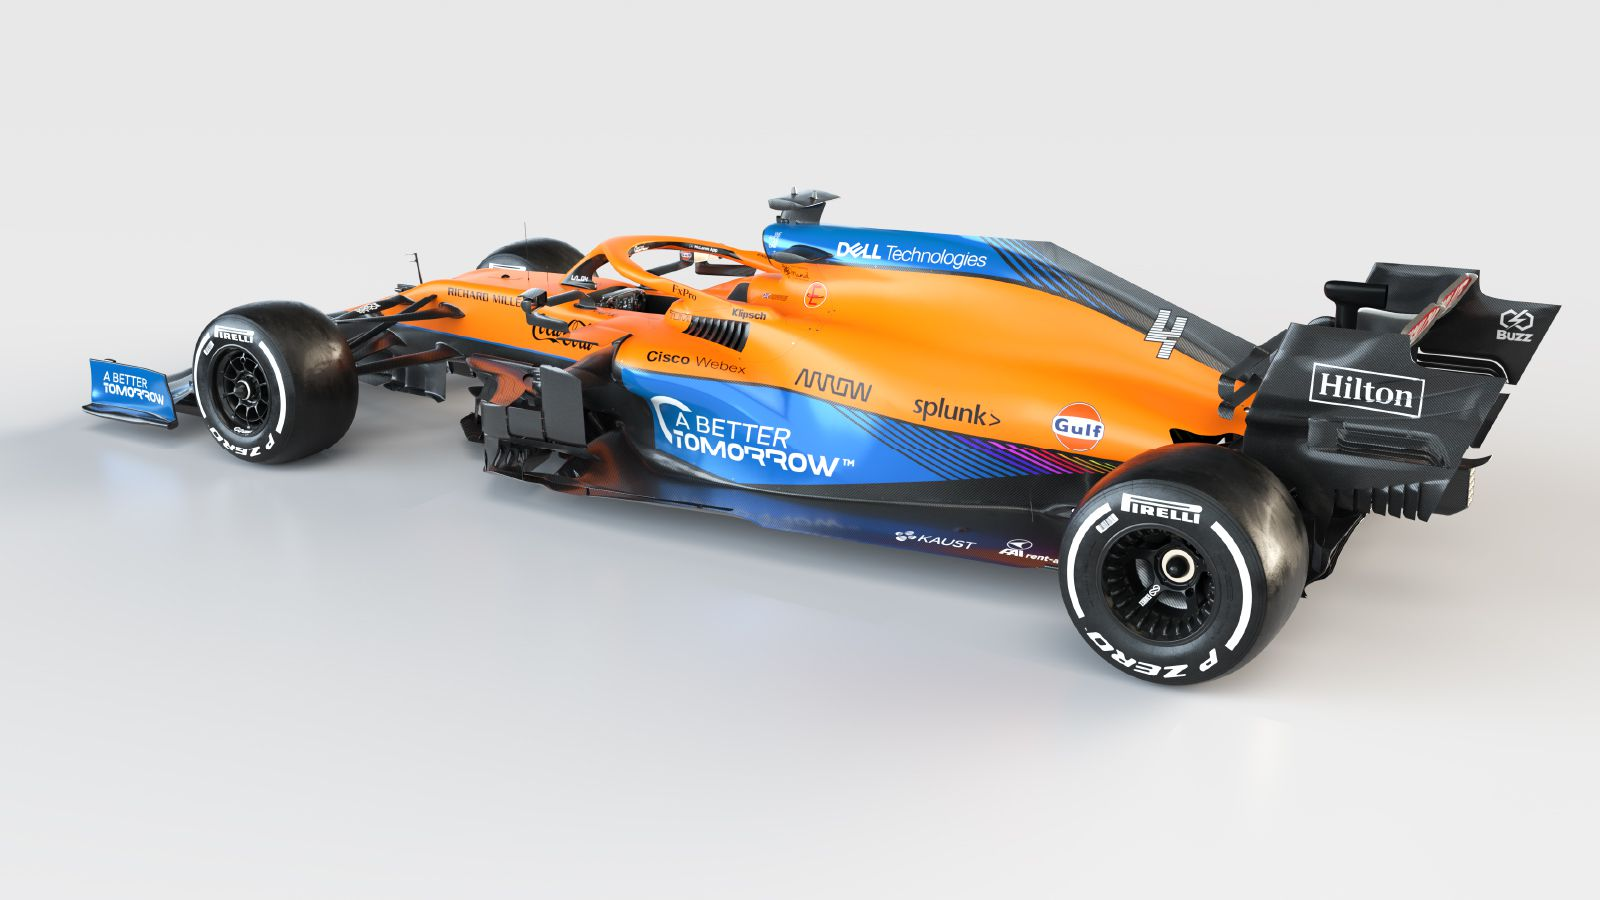 MCL35M_launch_Website_Gallery_Image_1600x620_72_6.jpg